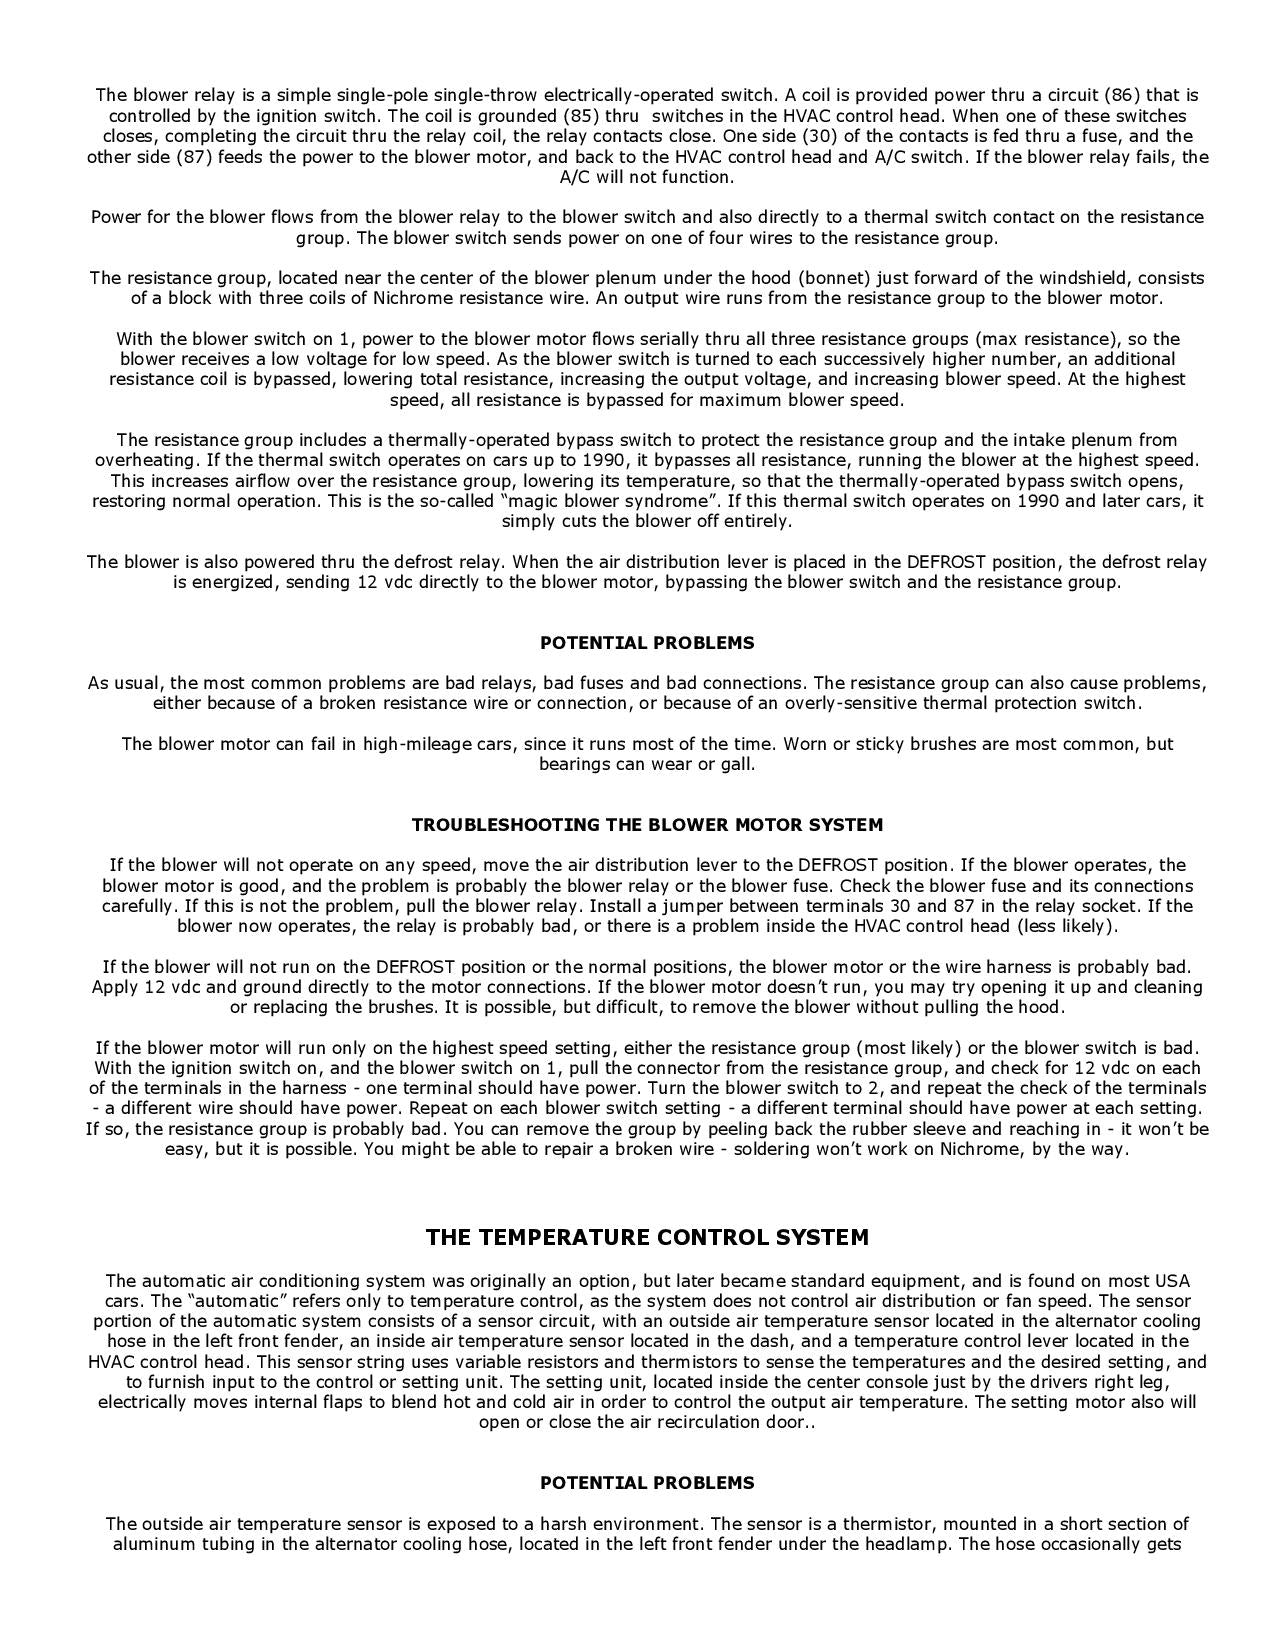 Troubleshooting the Refigeration System pg4